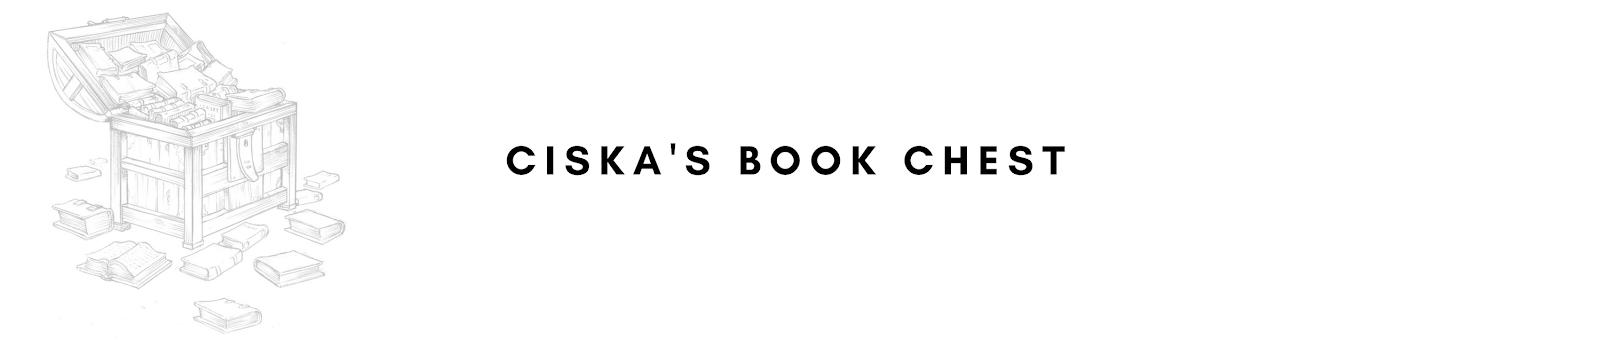 Ciska's Book Chest